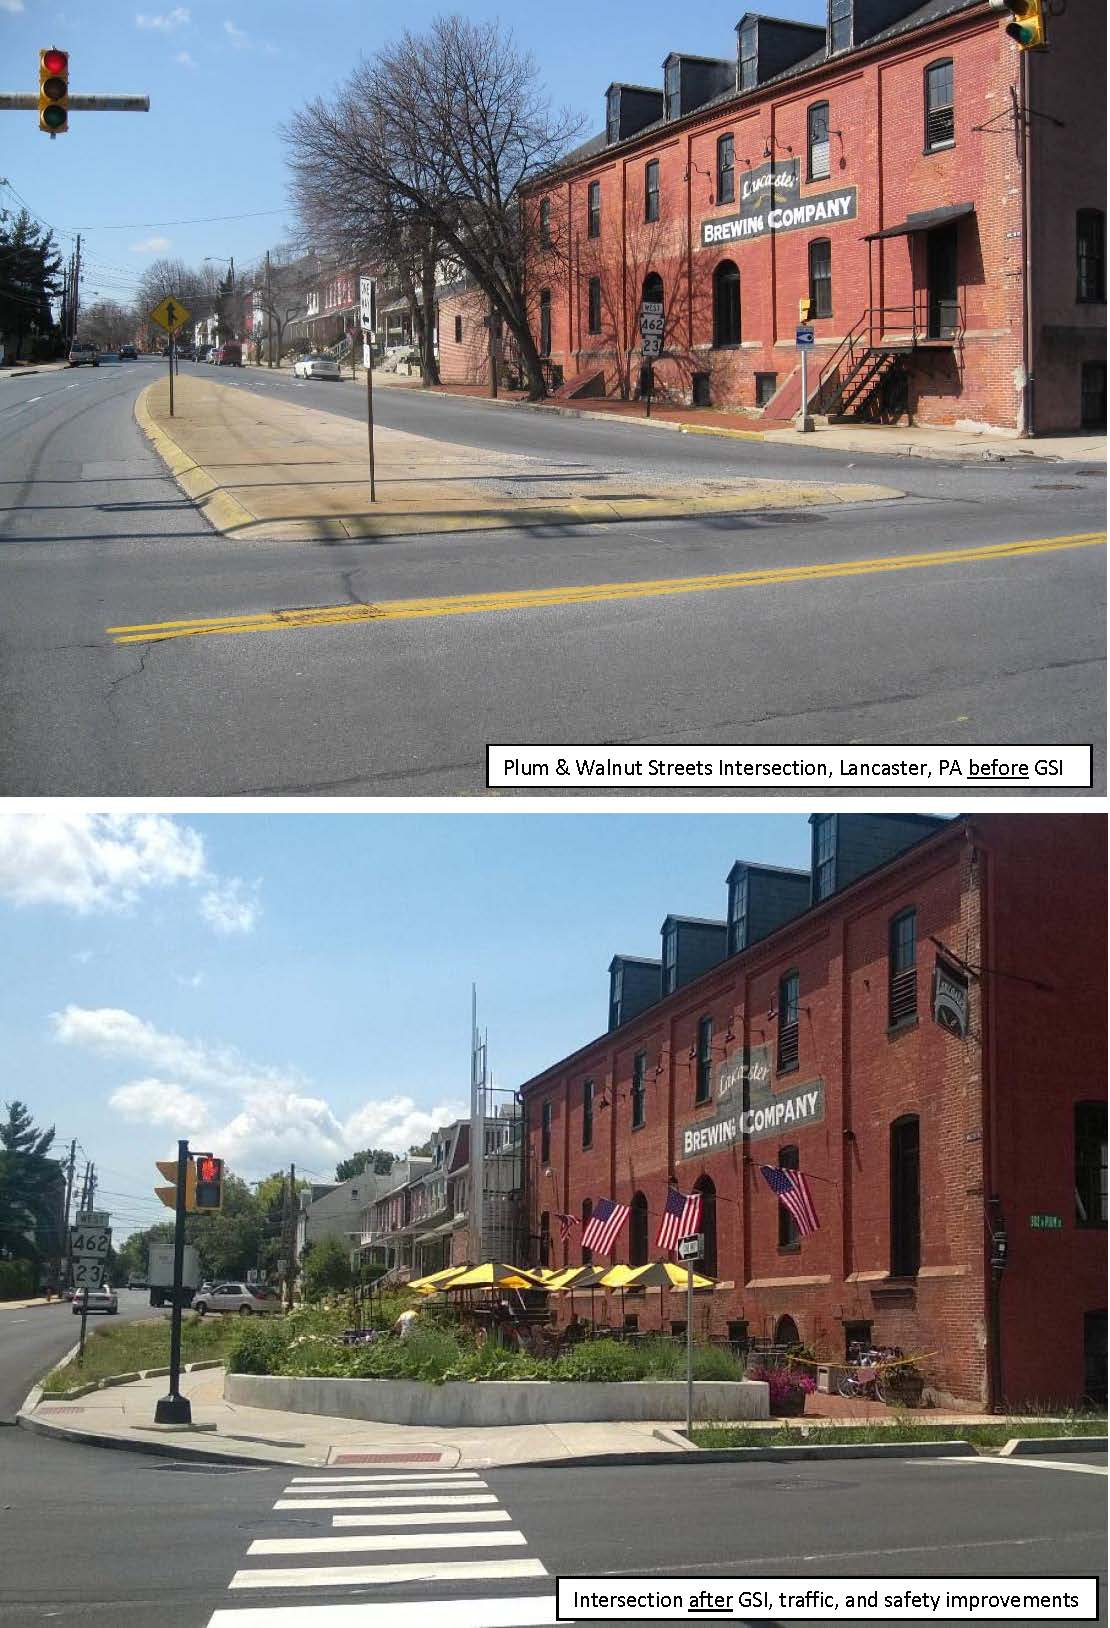 The City of Lancaster, Pa., improved traffic and pedestrian safety, implemented significant green infrastructure, and enhanced a local business through this integrated, public-private partnership project at the Plum and Walnut intersection.